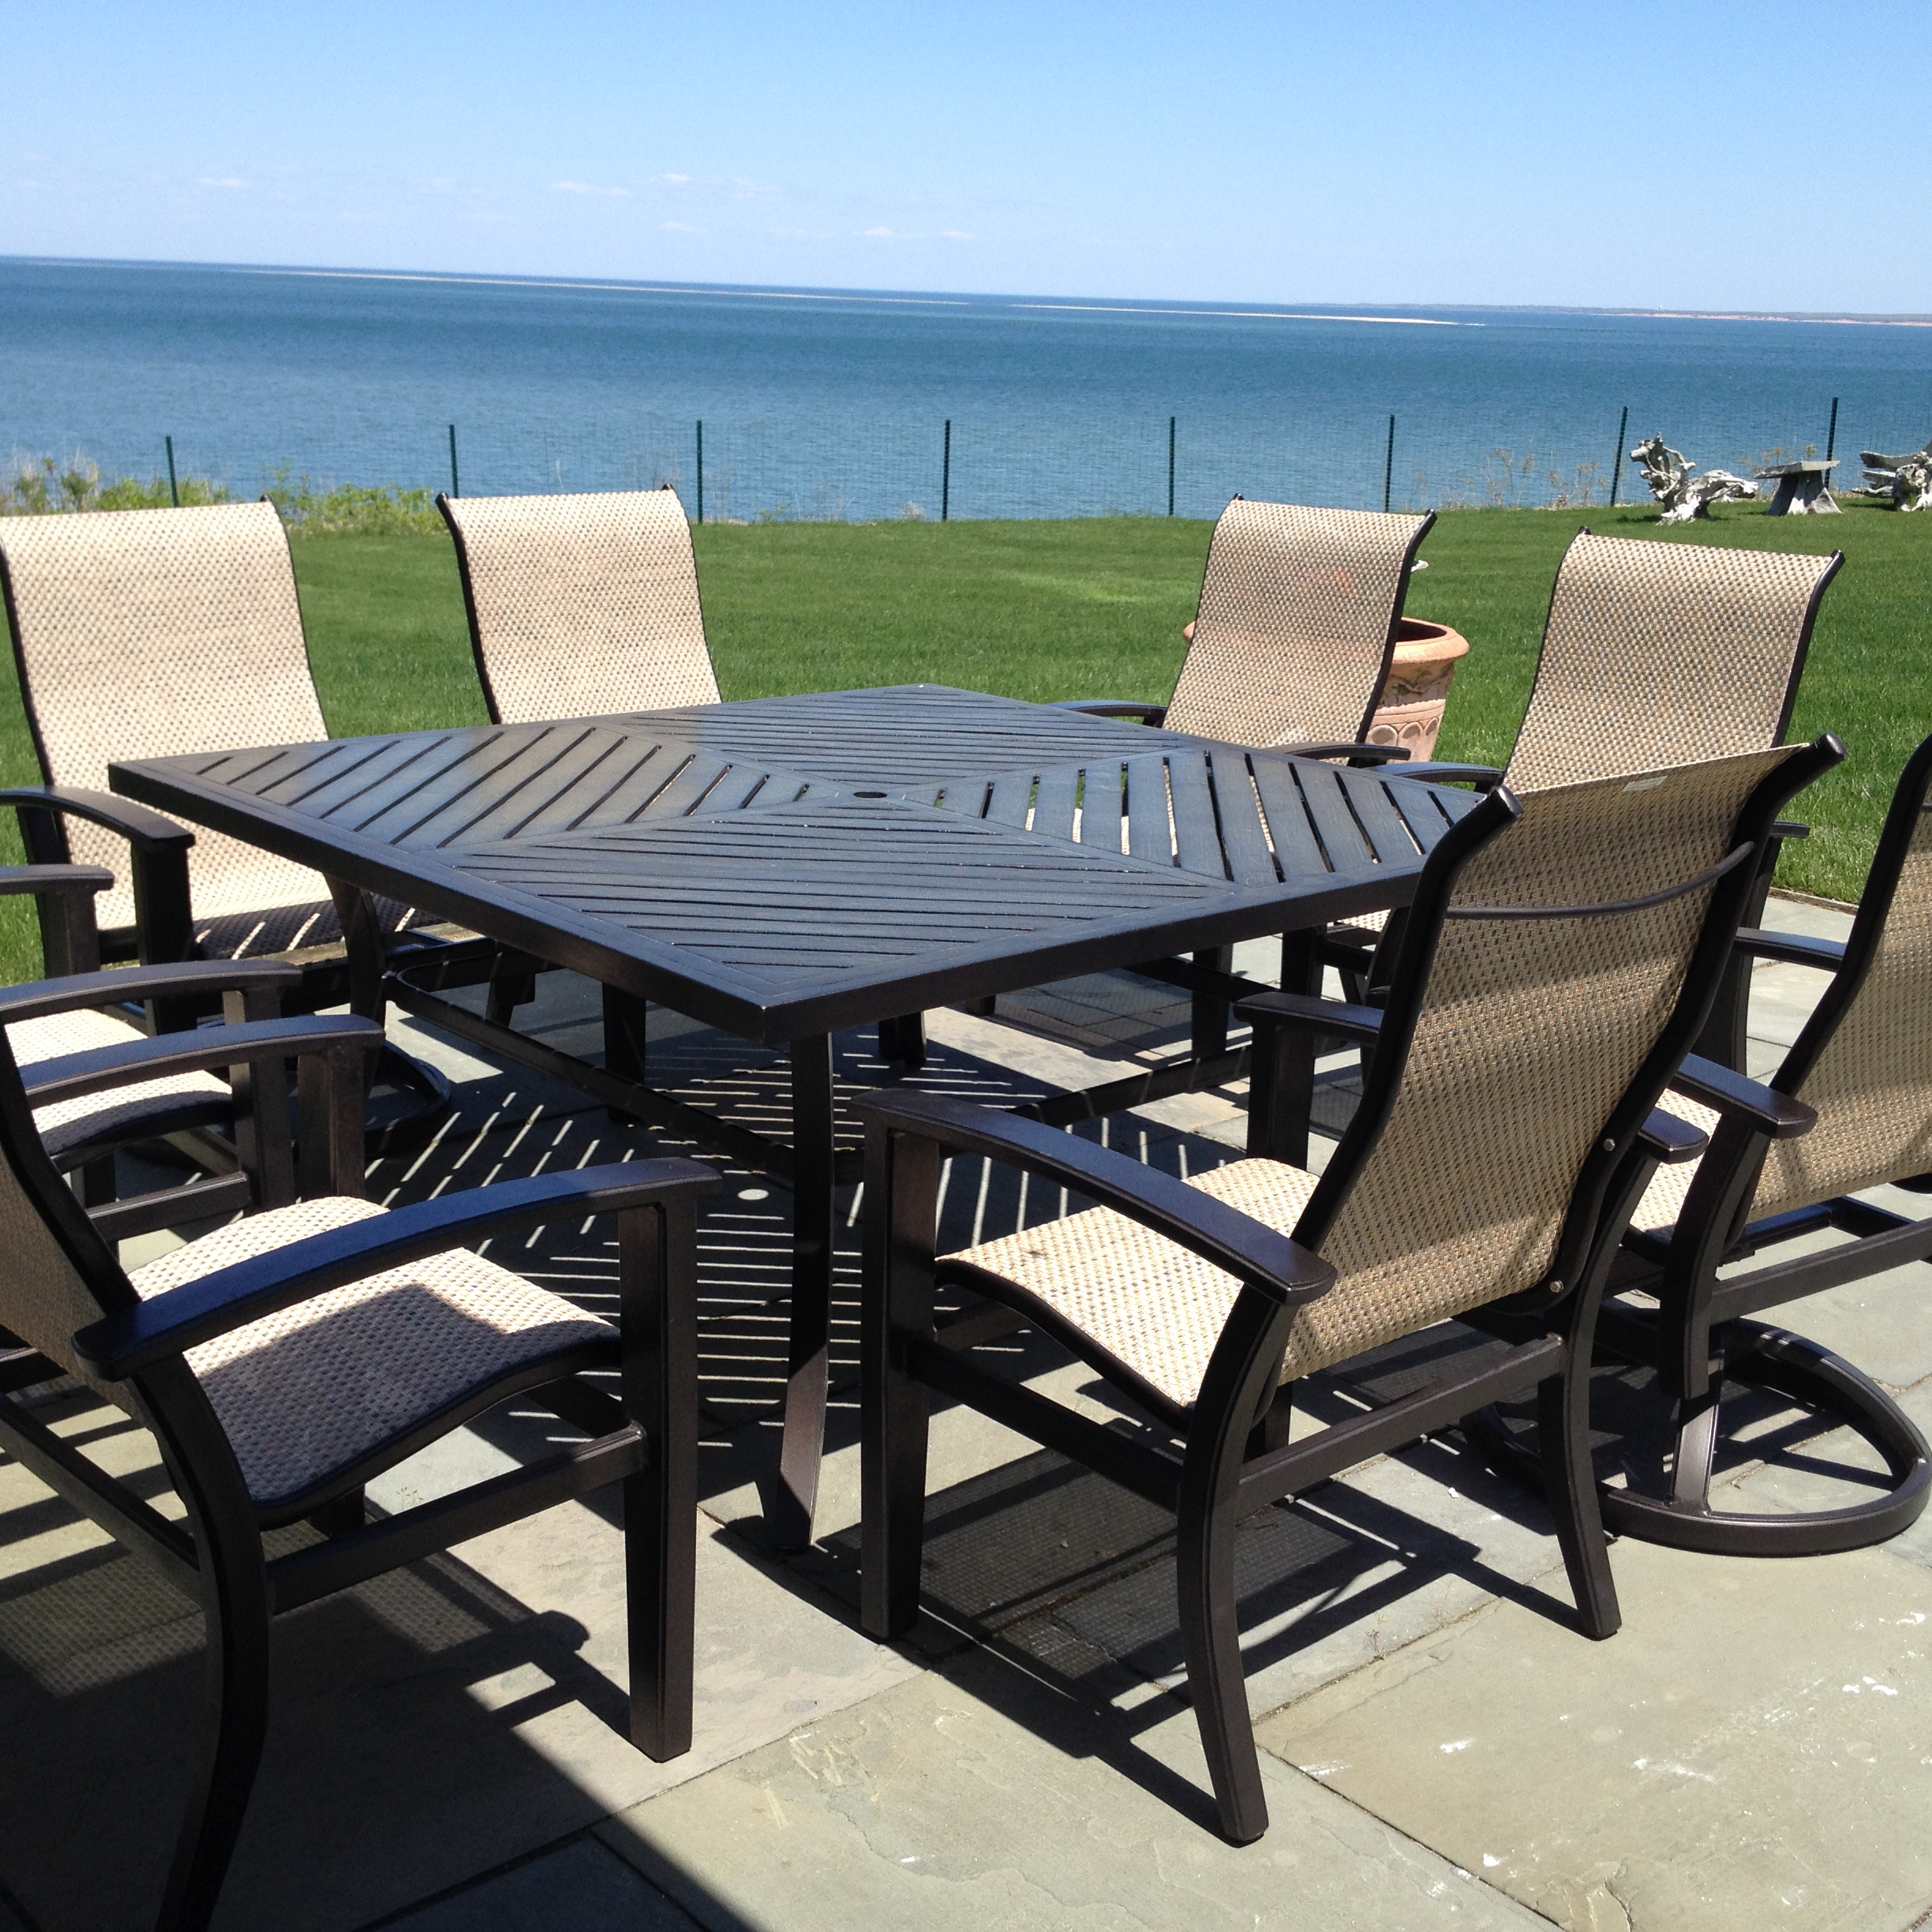 sling replacement for patio chairs heavy duty outdoor furniture slings repair refinish